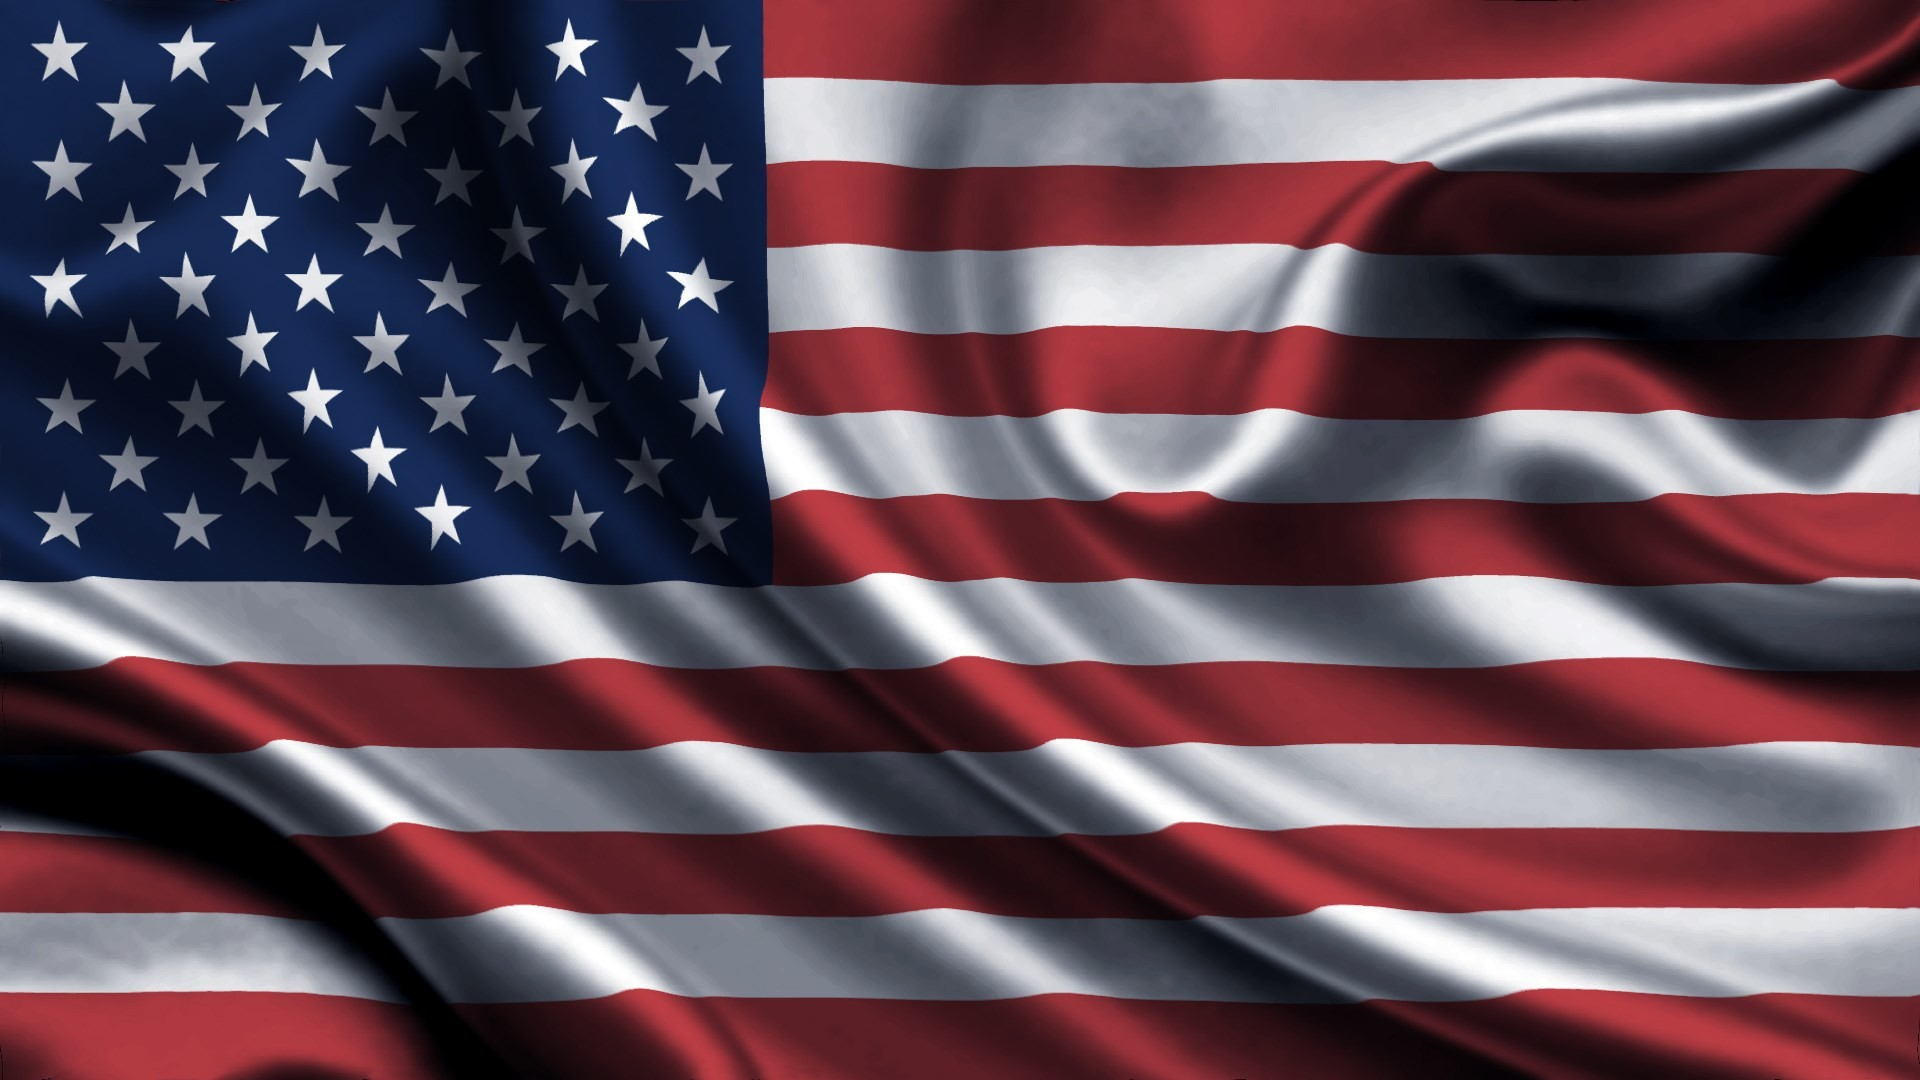 American Flag Wallpaper 1920x1080 61 Images